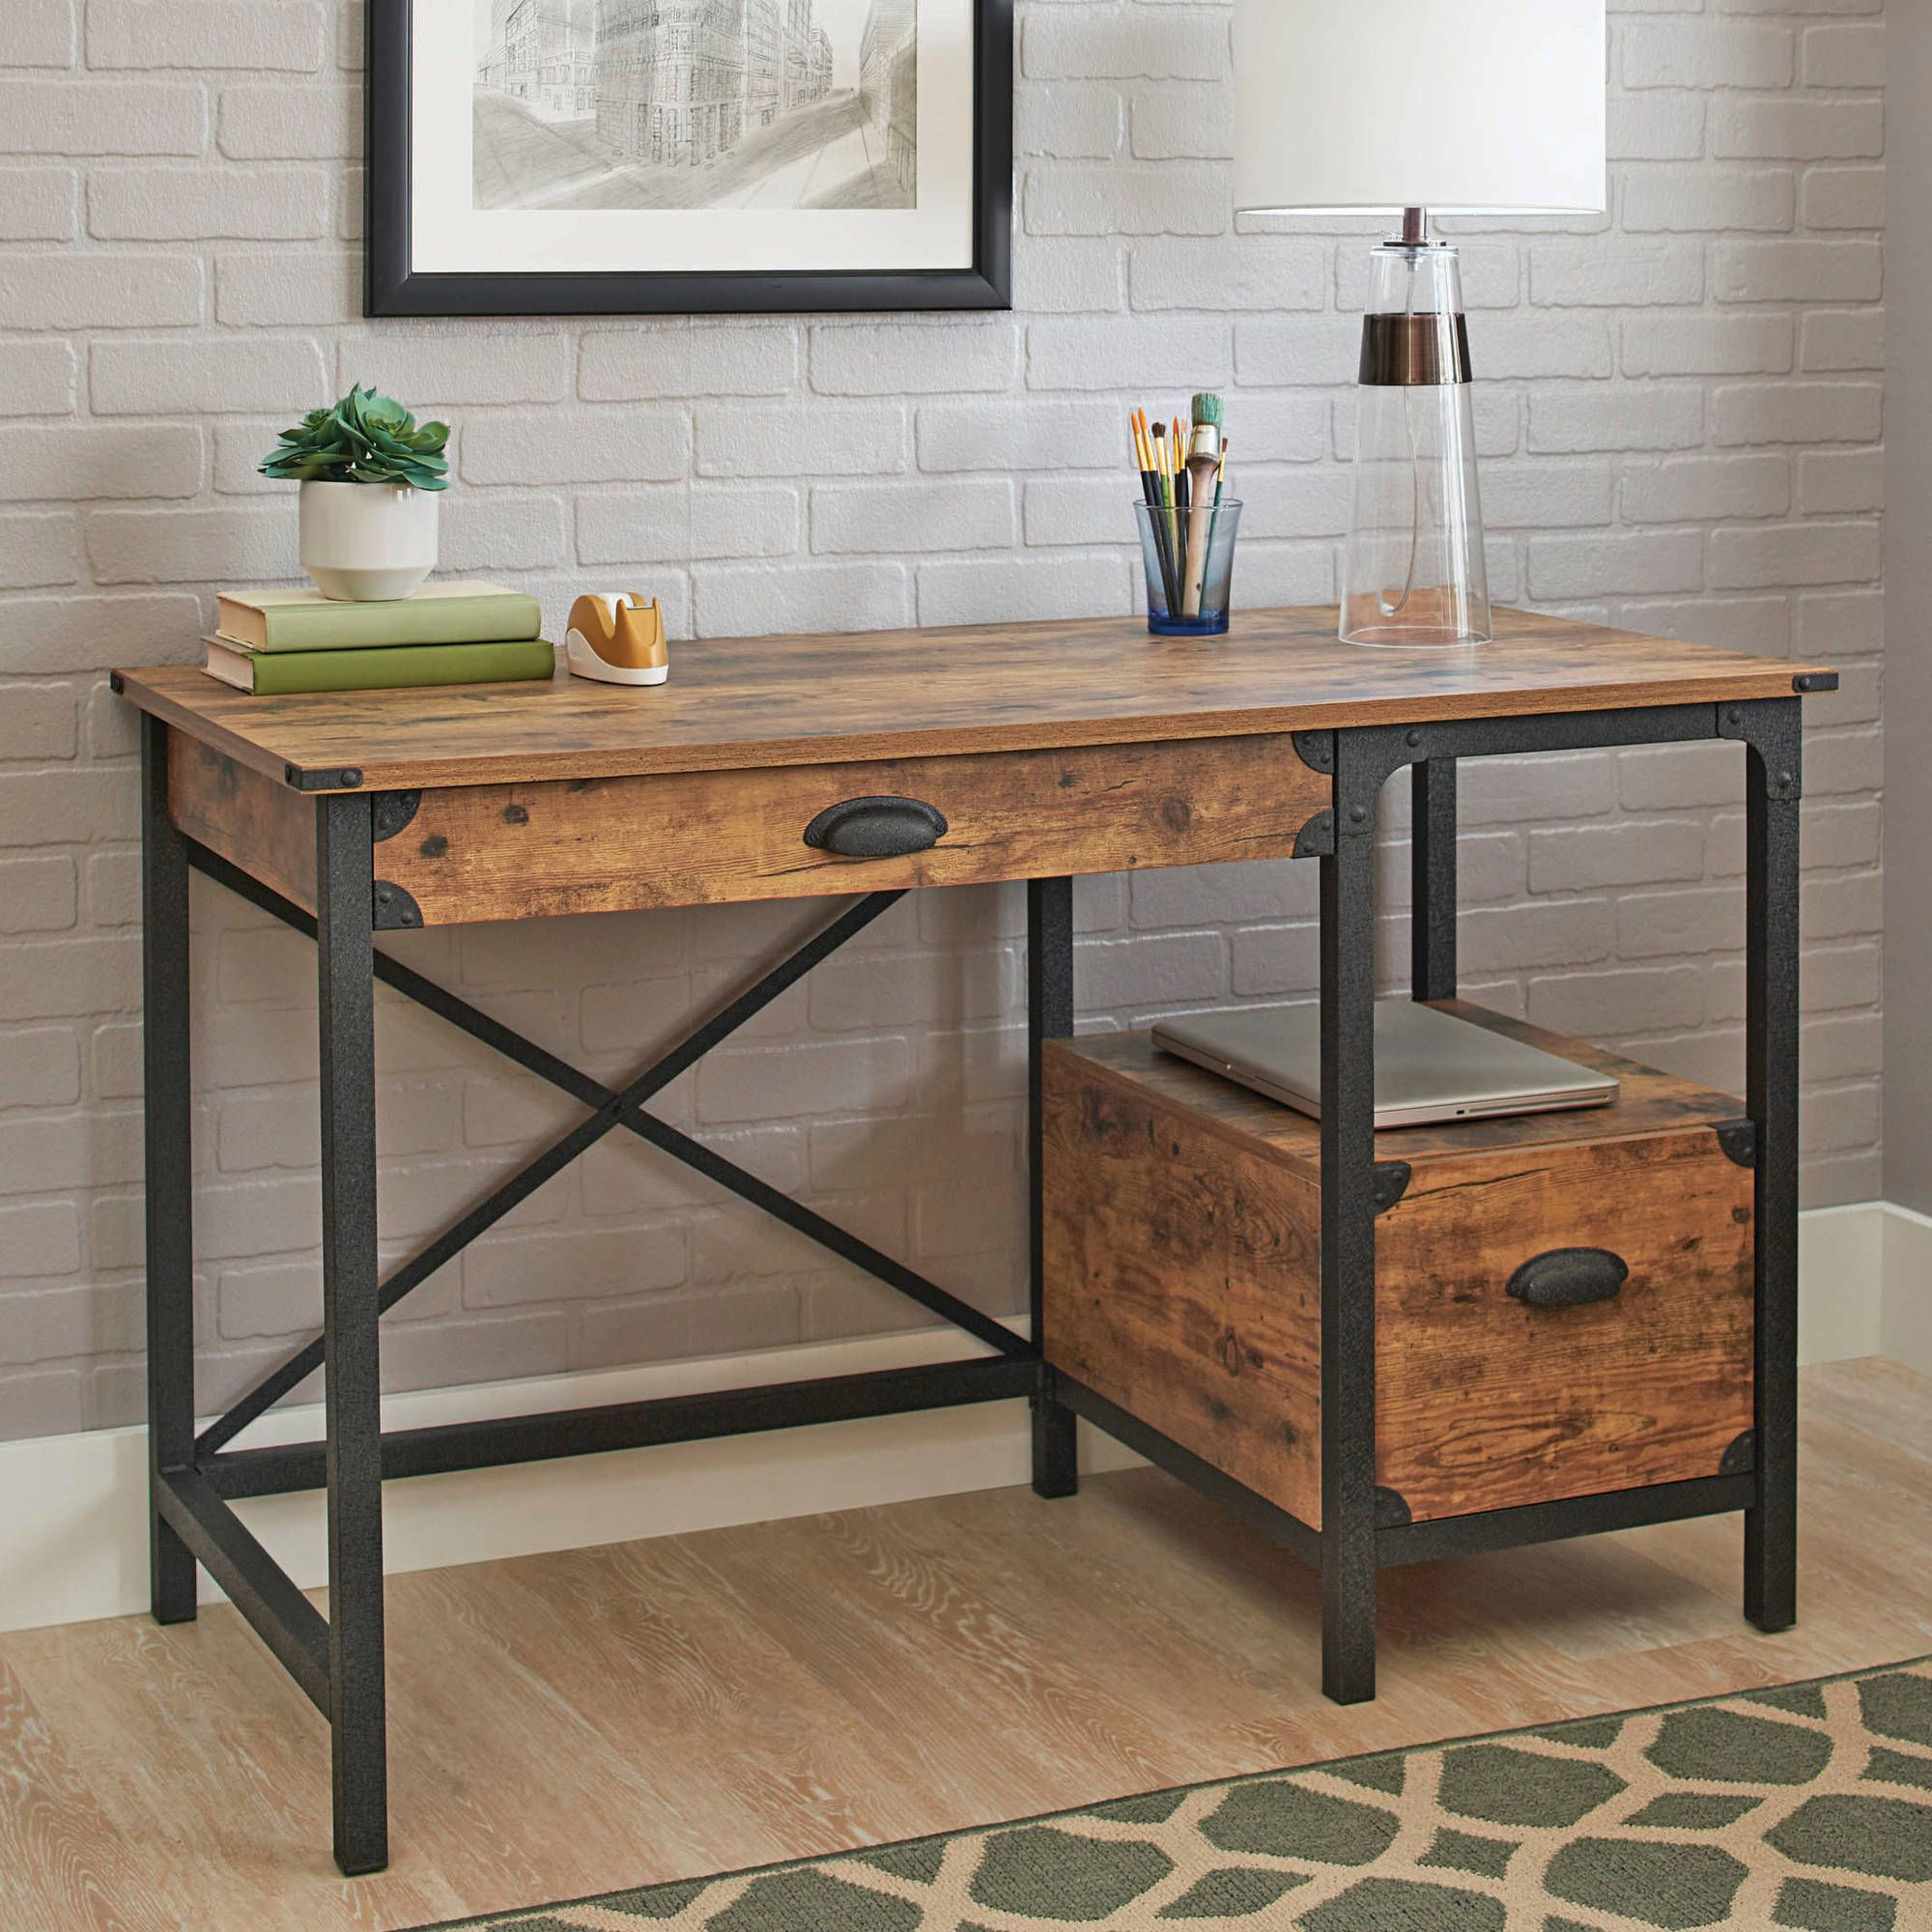 better homes and gardens rustic country desk, weathered pine